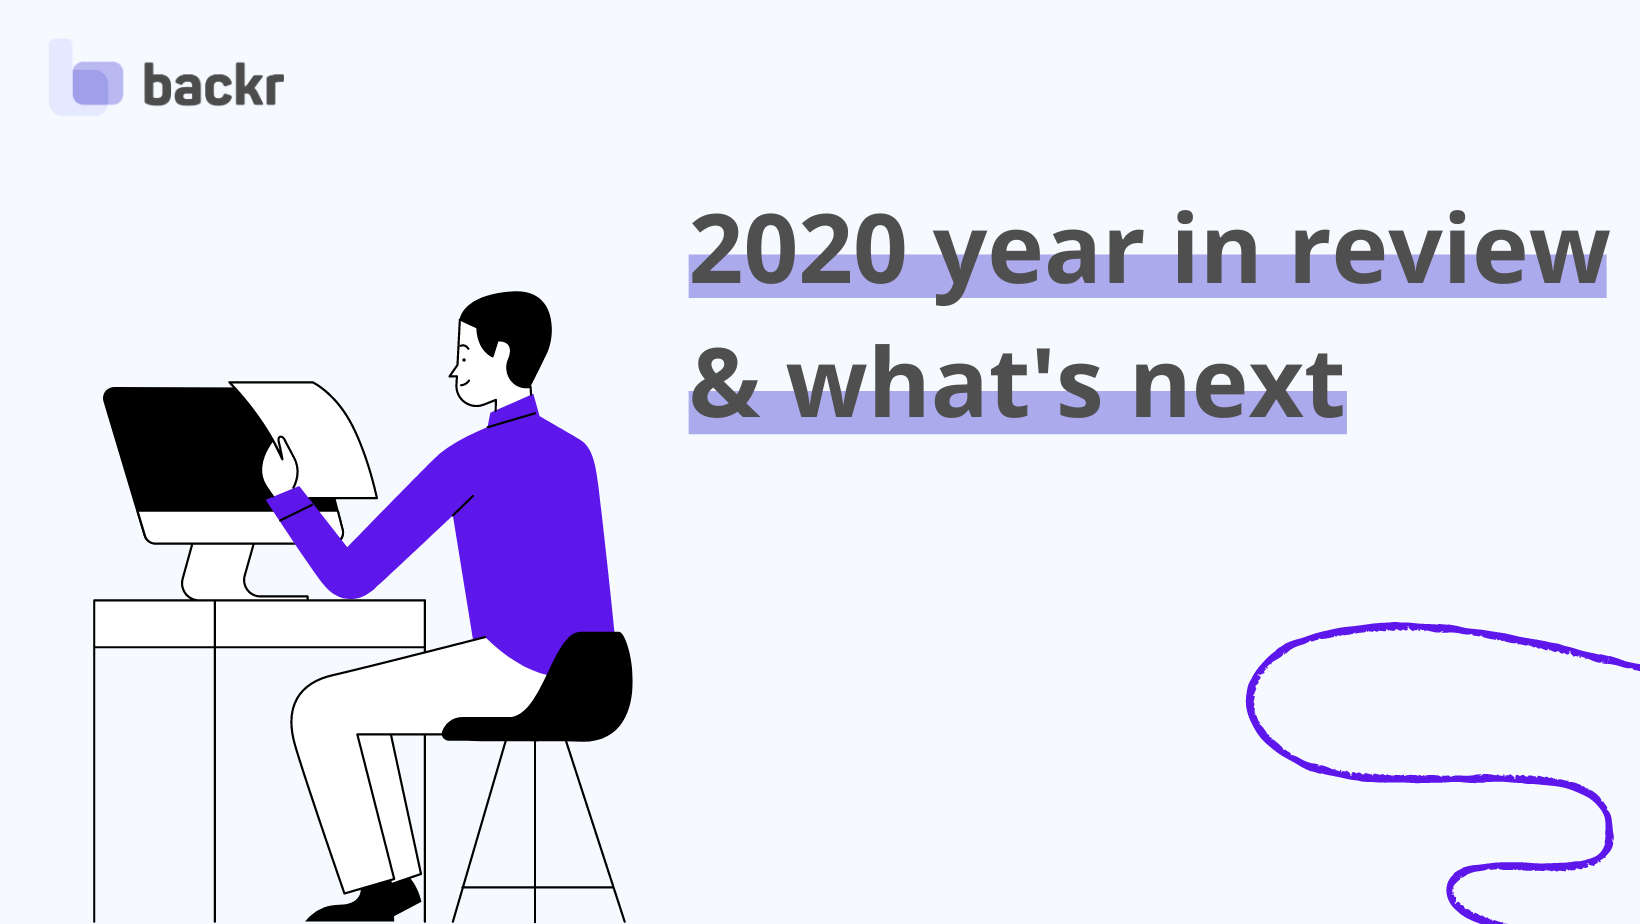 Backr 2020 year in review and what's next